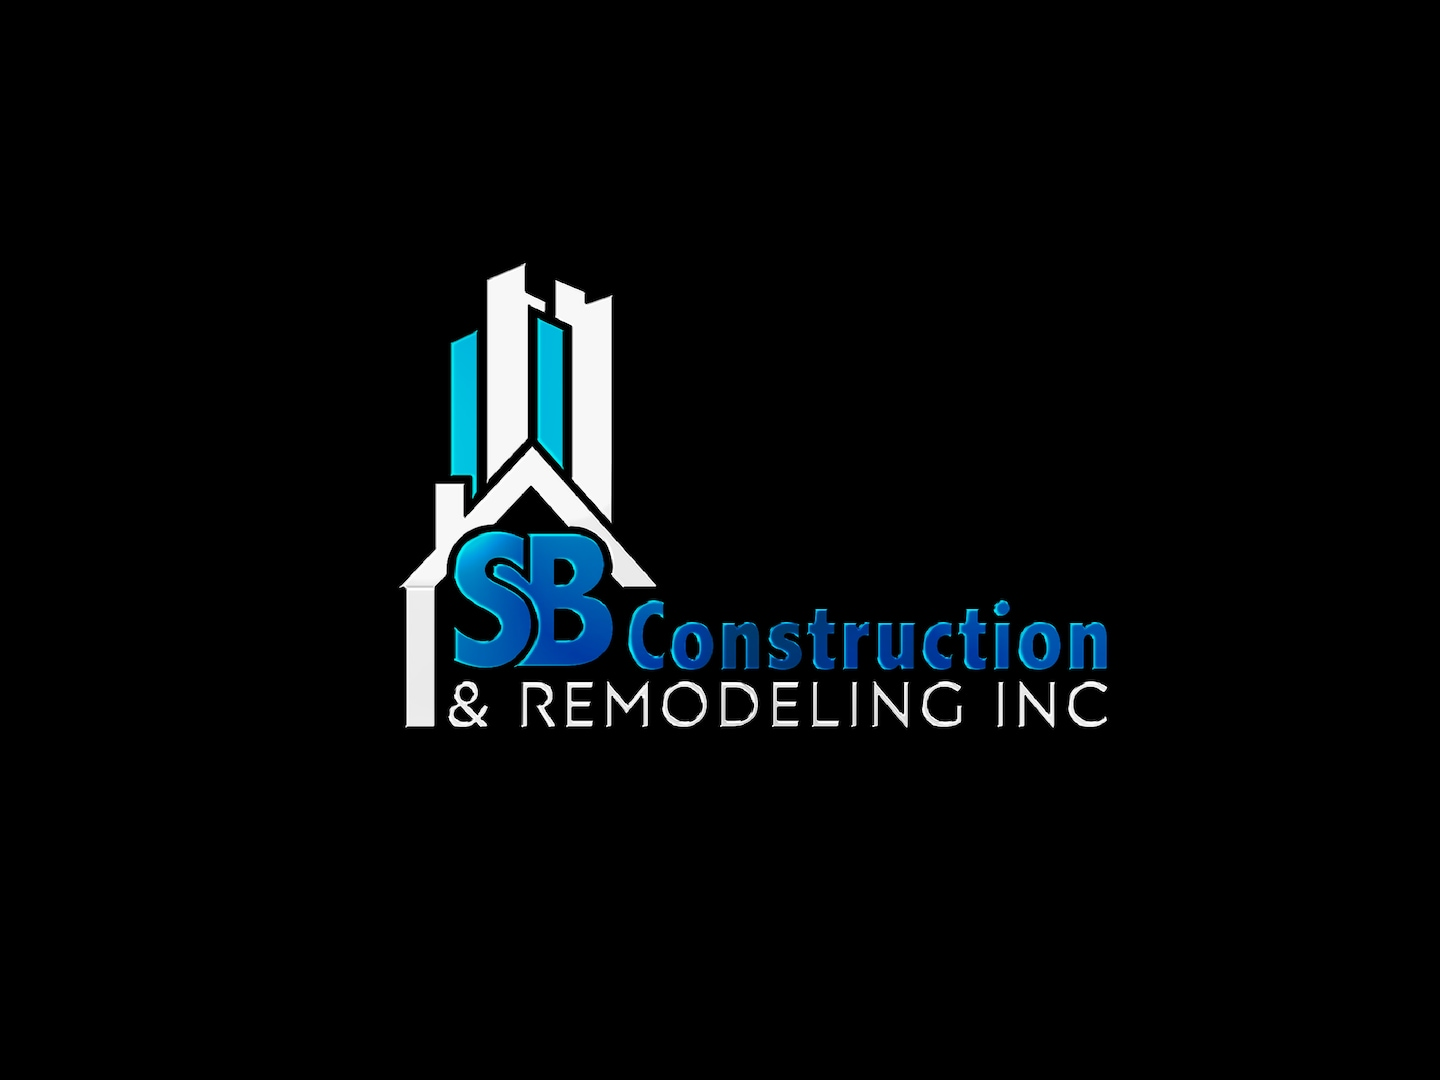 SB Construction & Remodeling